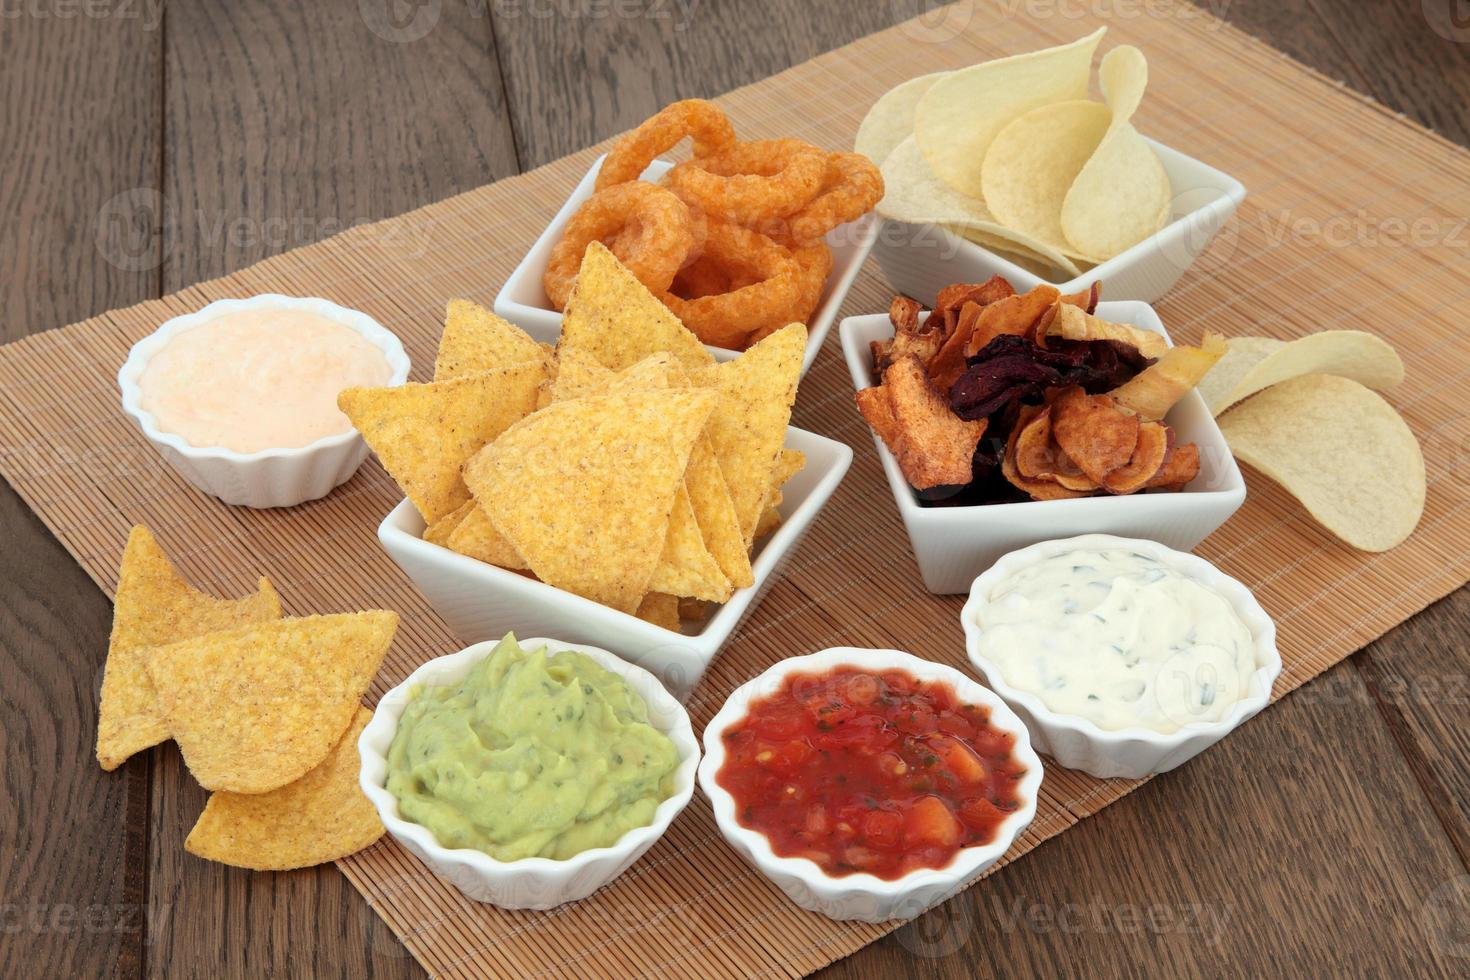 Crisps and Dips photo